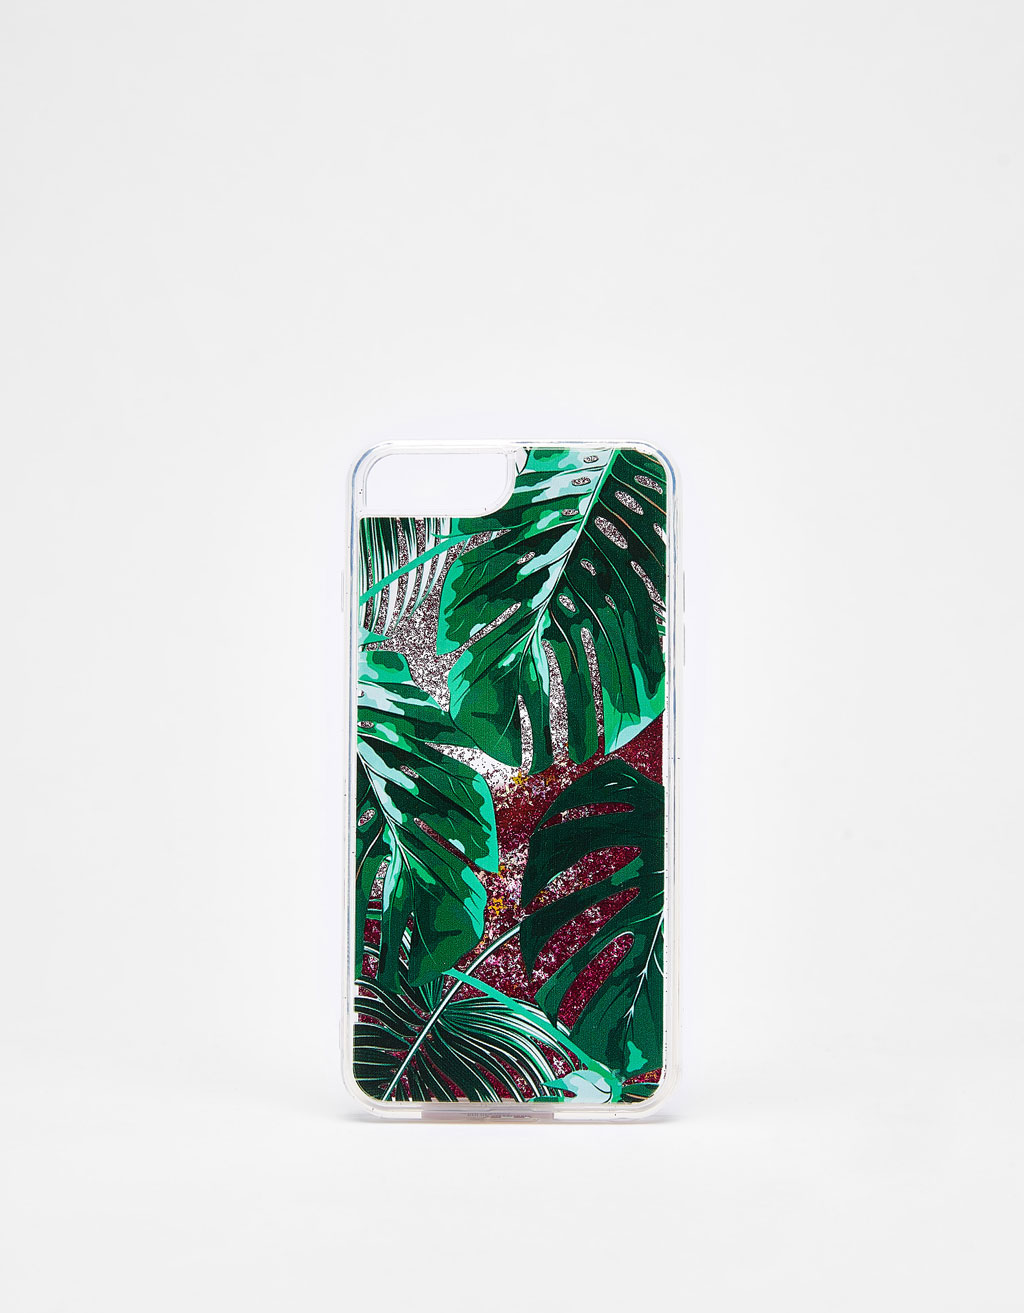 Coque tropicale iPhone 6/7/8 plus